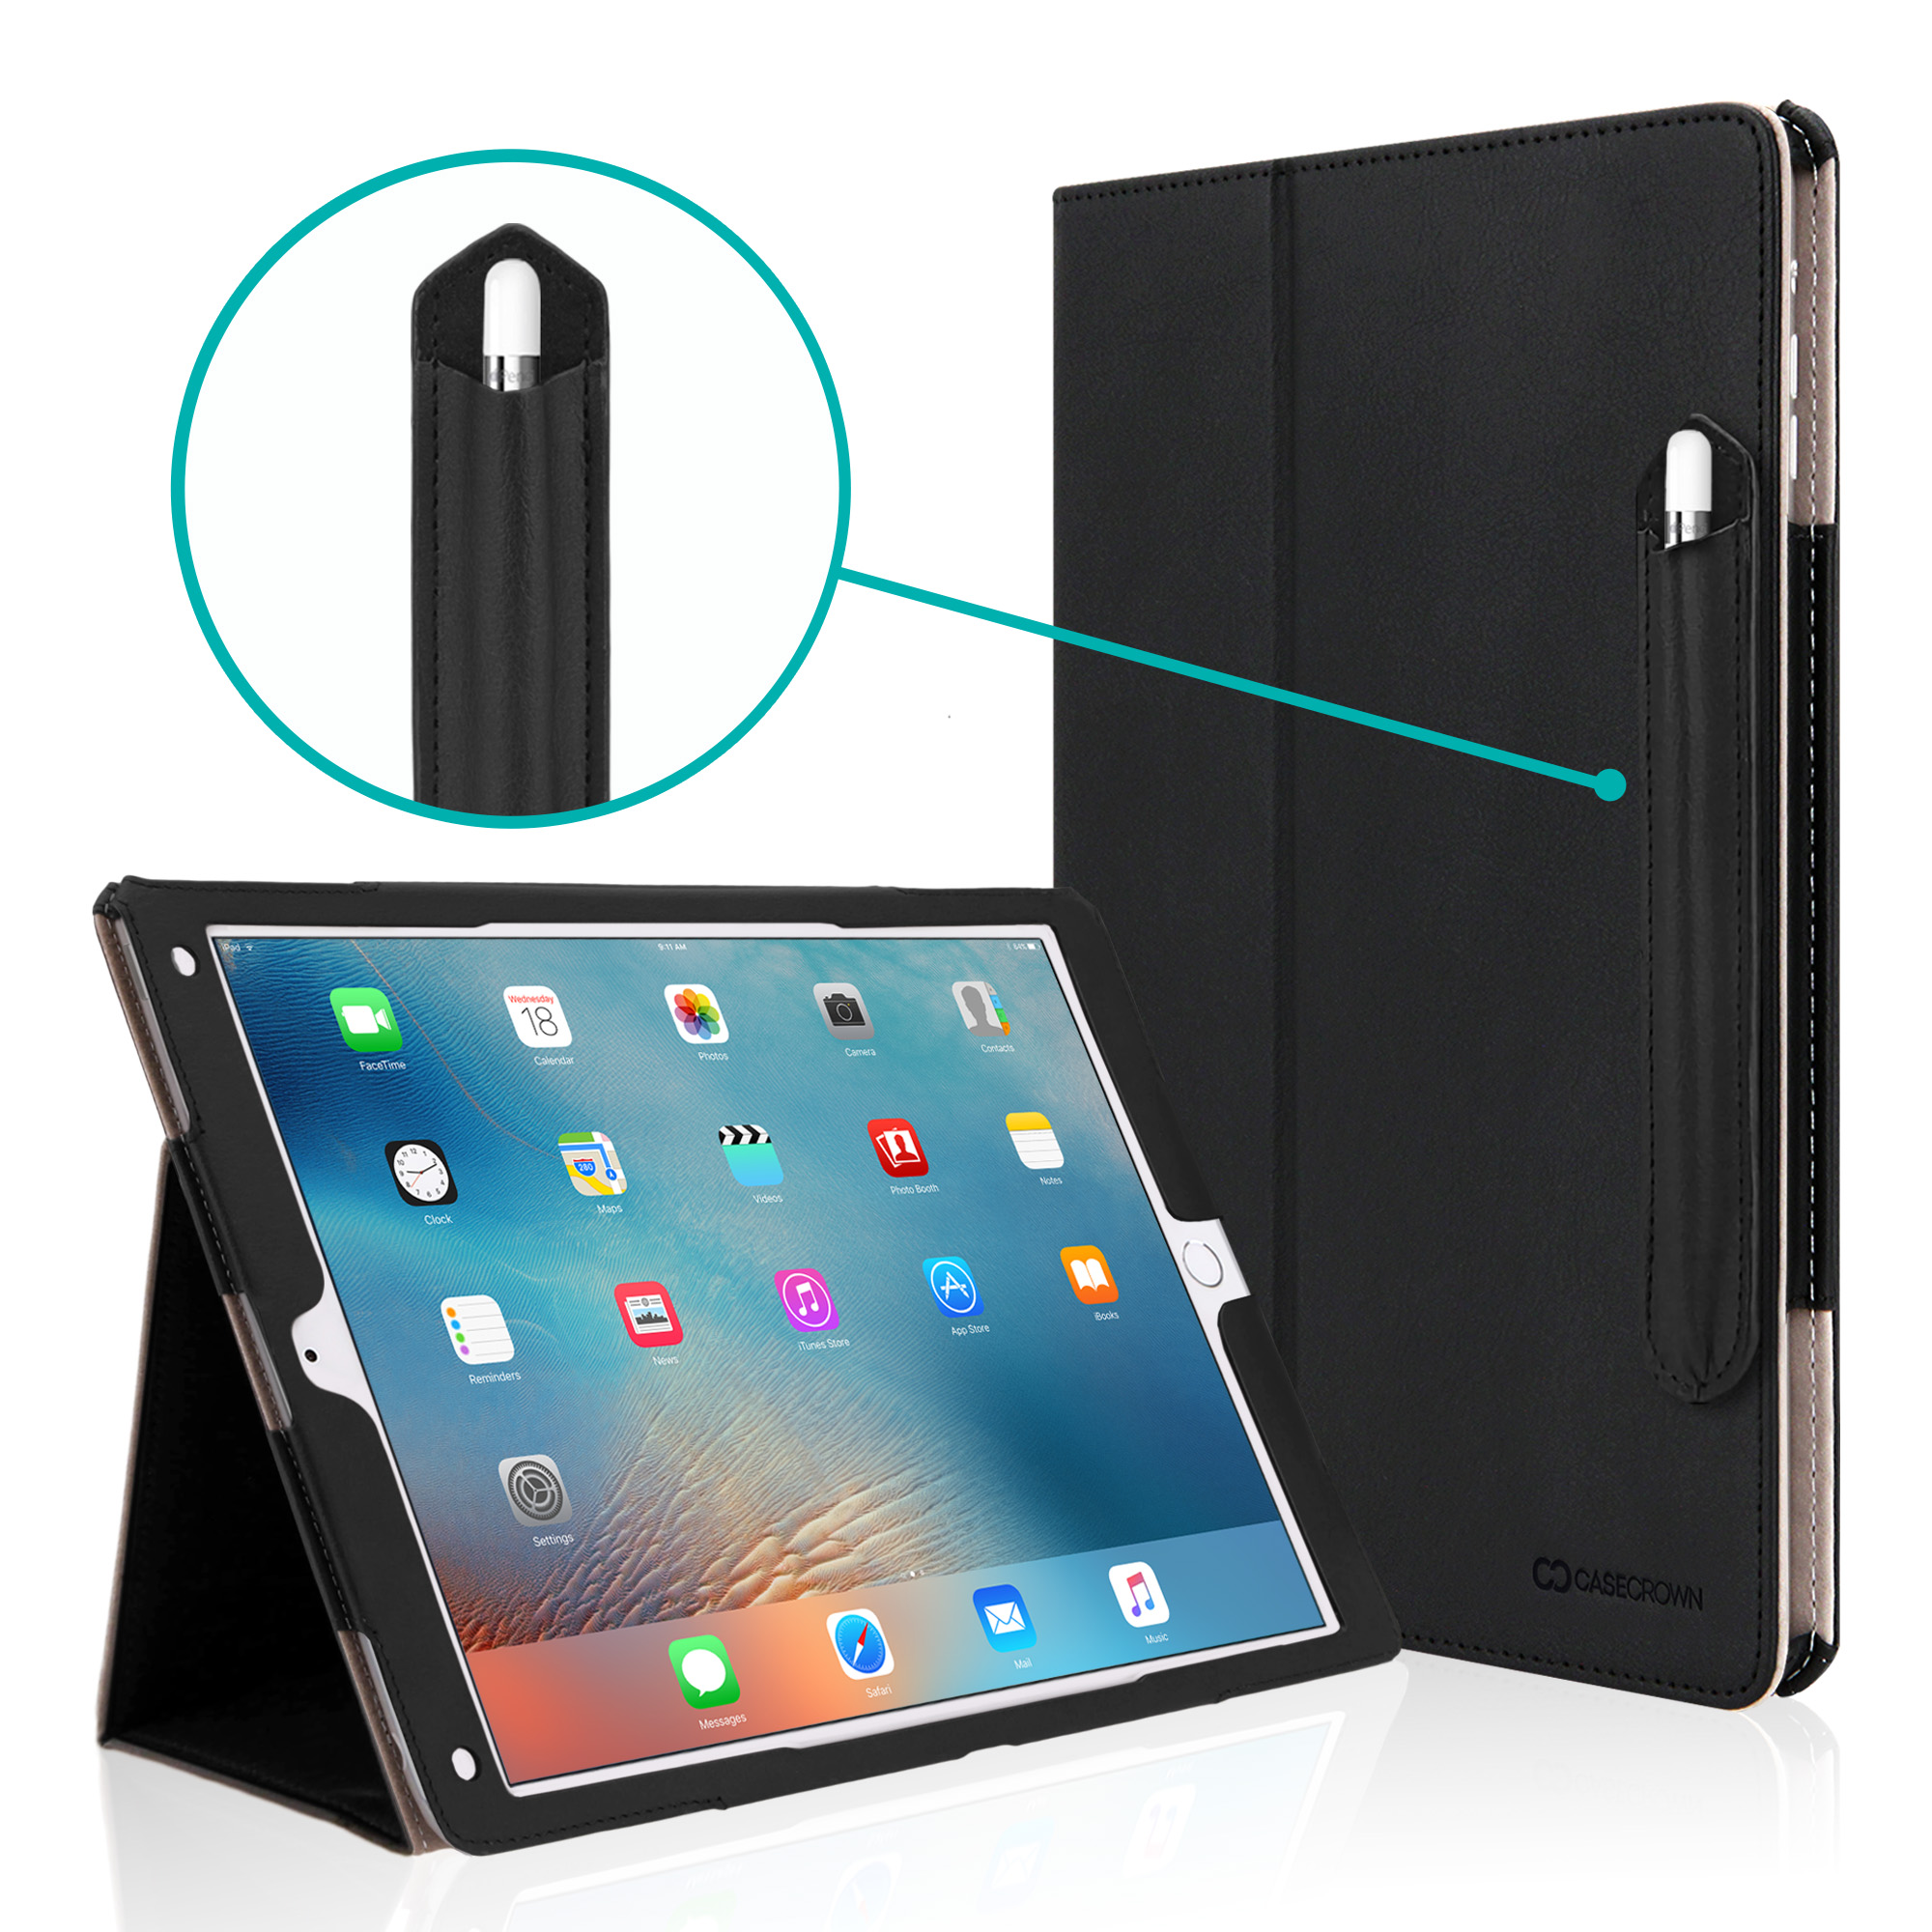 iPad Pro 12.9 Case, [Corner Protection] CaseCrown Bold Standby Pro w/ Apple Pencil Holder